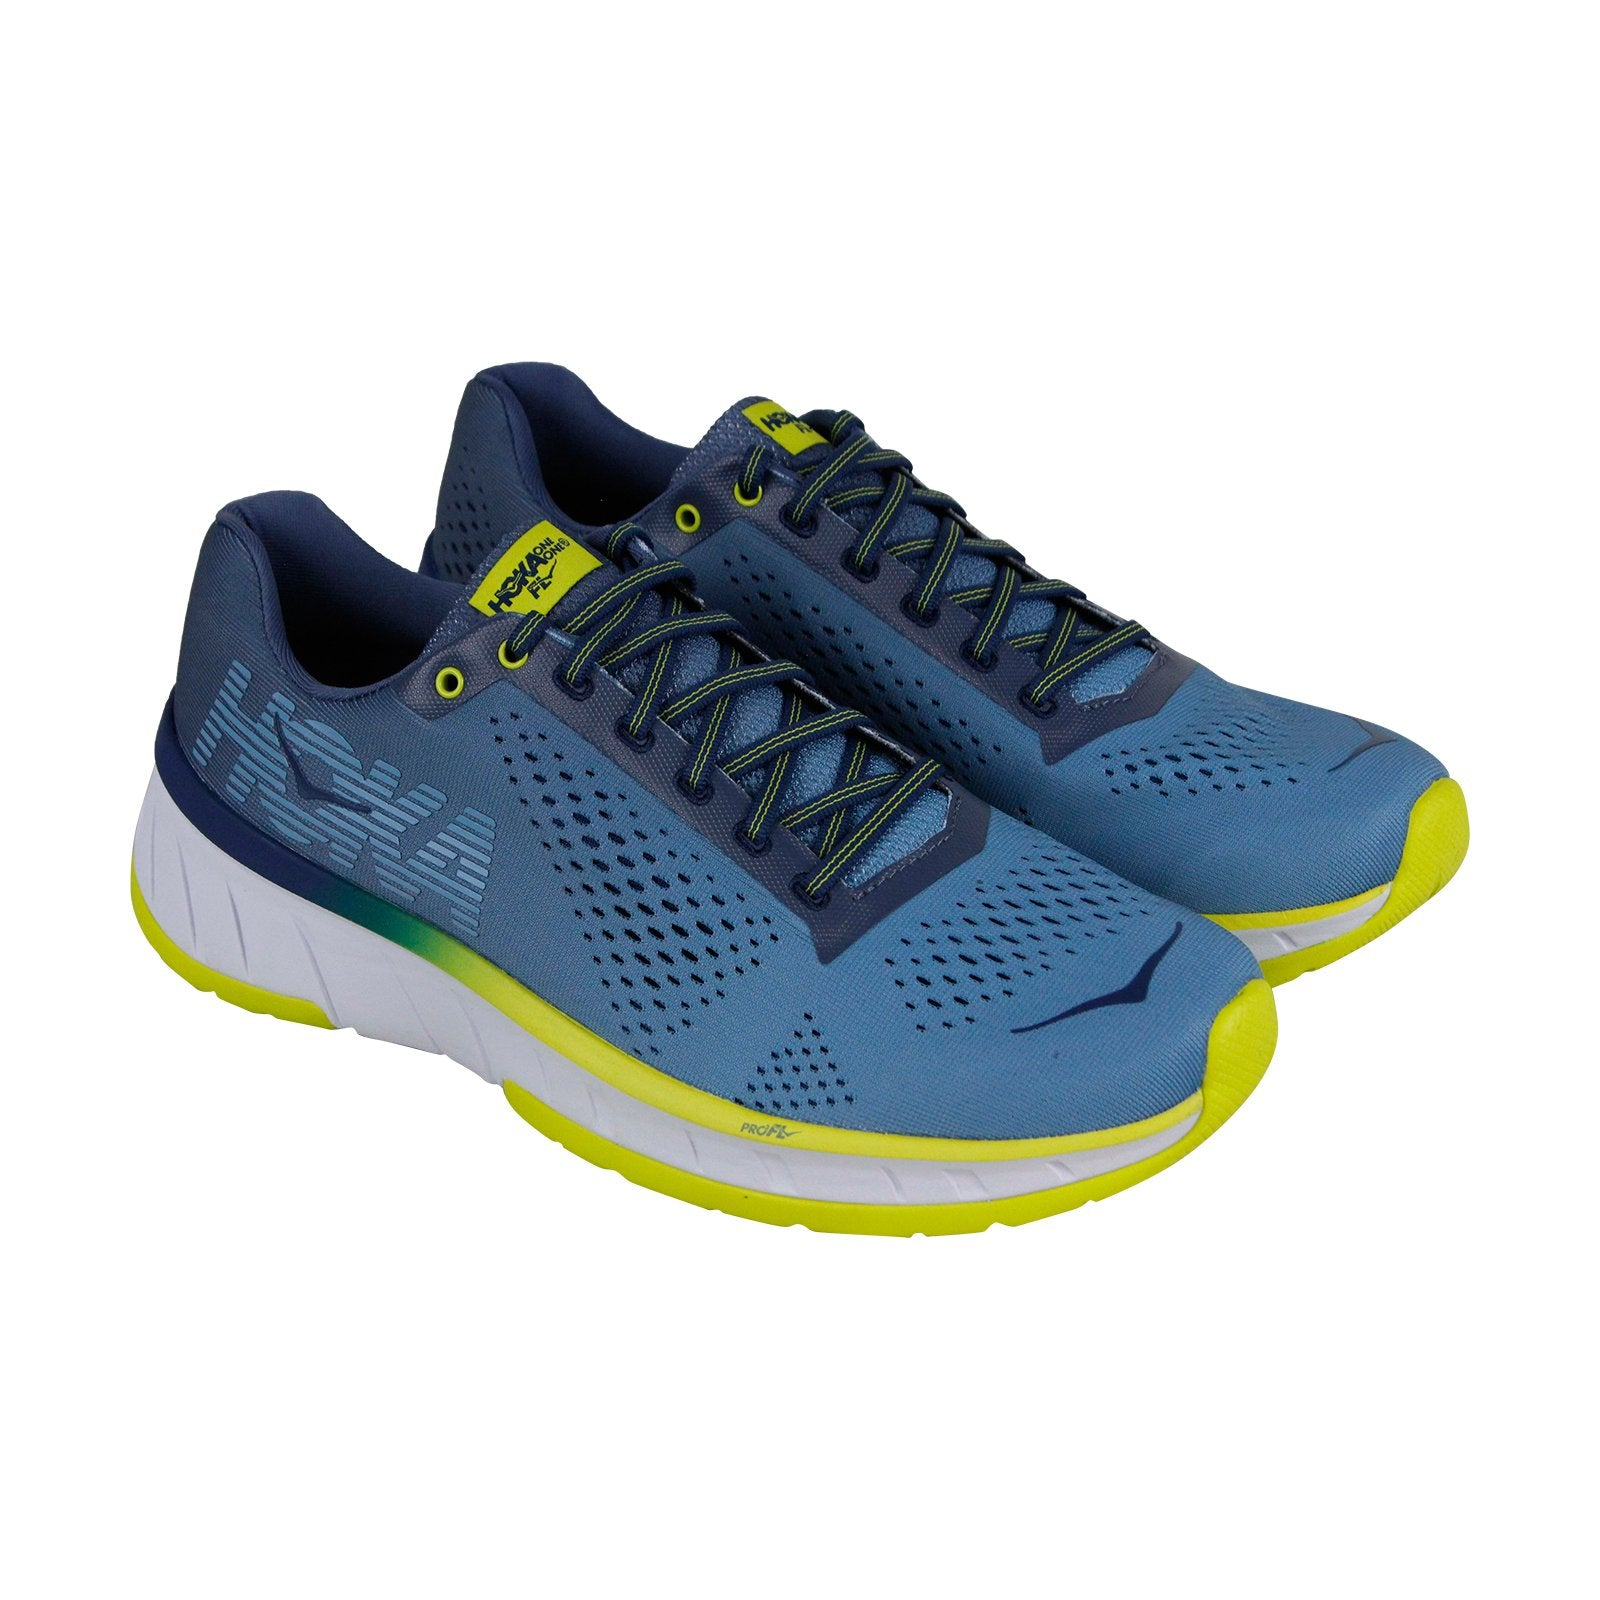 best website 9b879 d047b Hoka One One Cavu Mens Blue Textile Athletic Lace Up Running Shoes